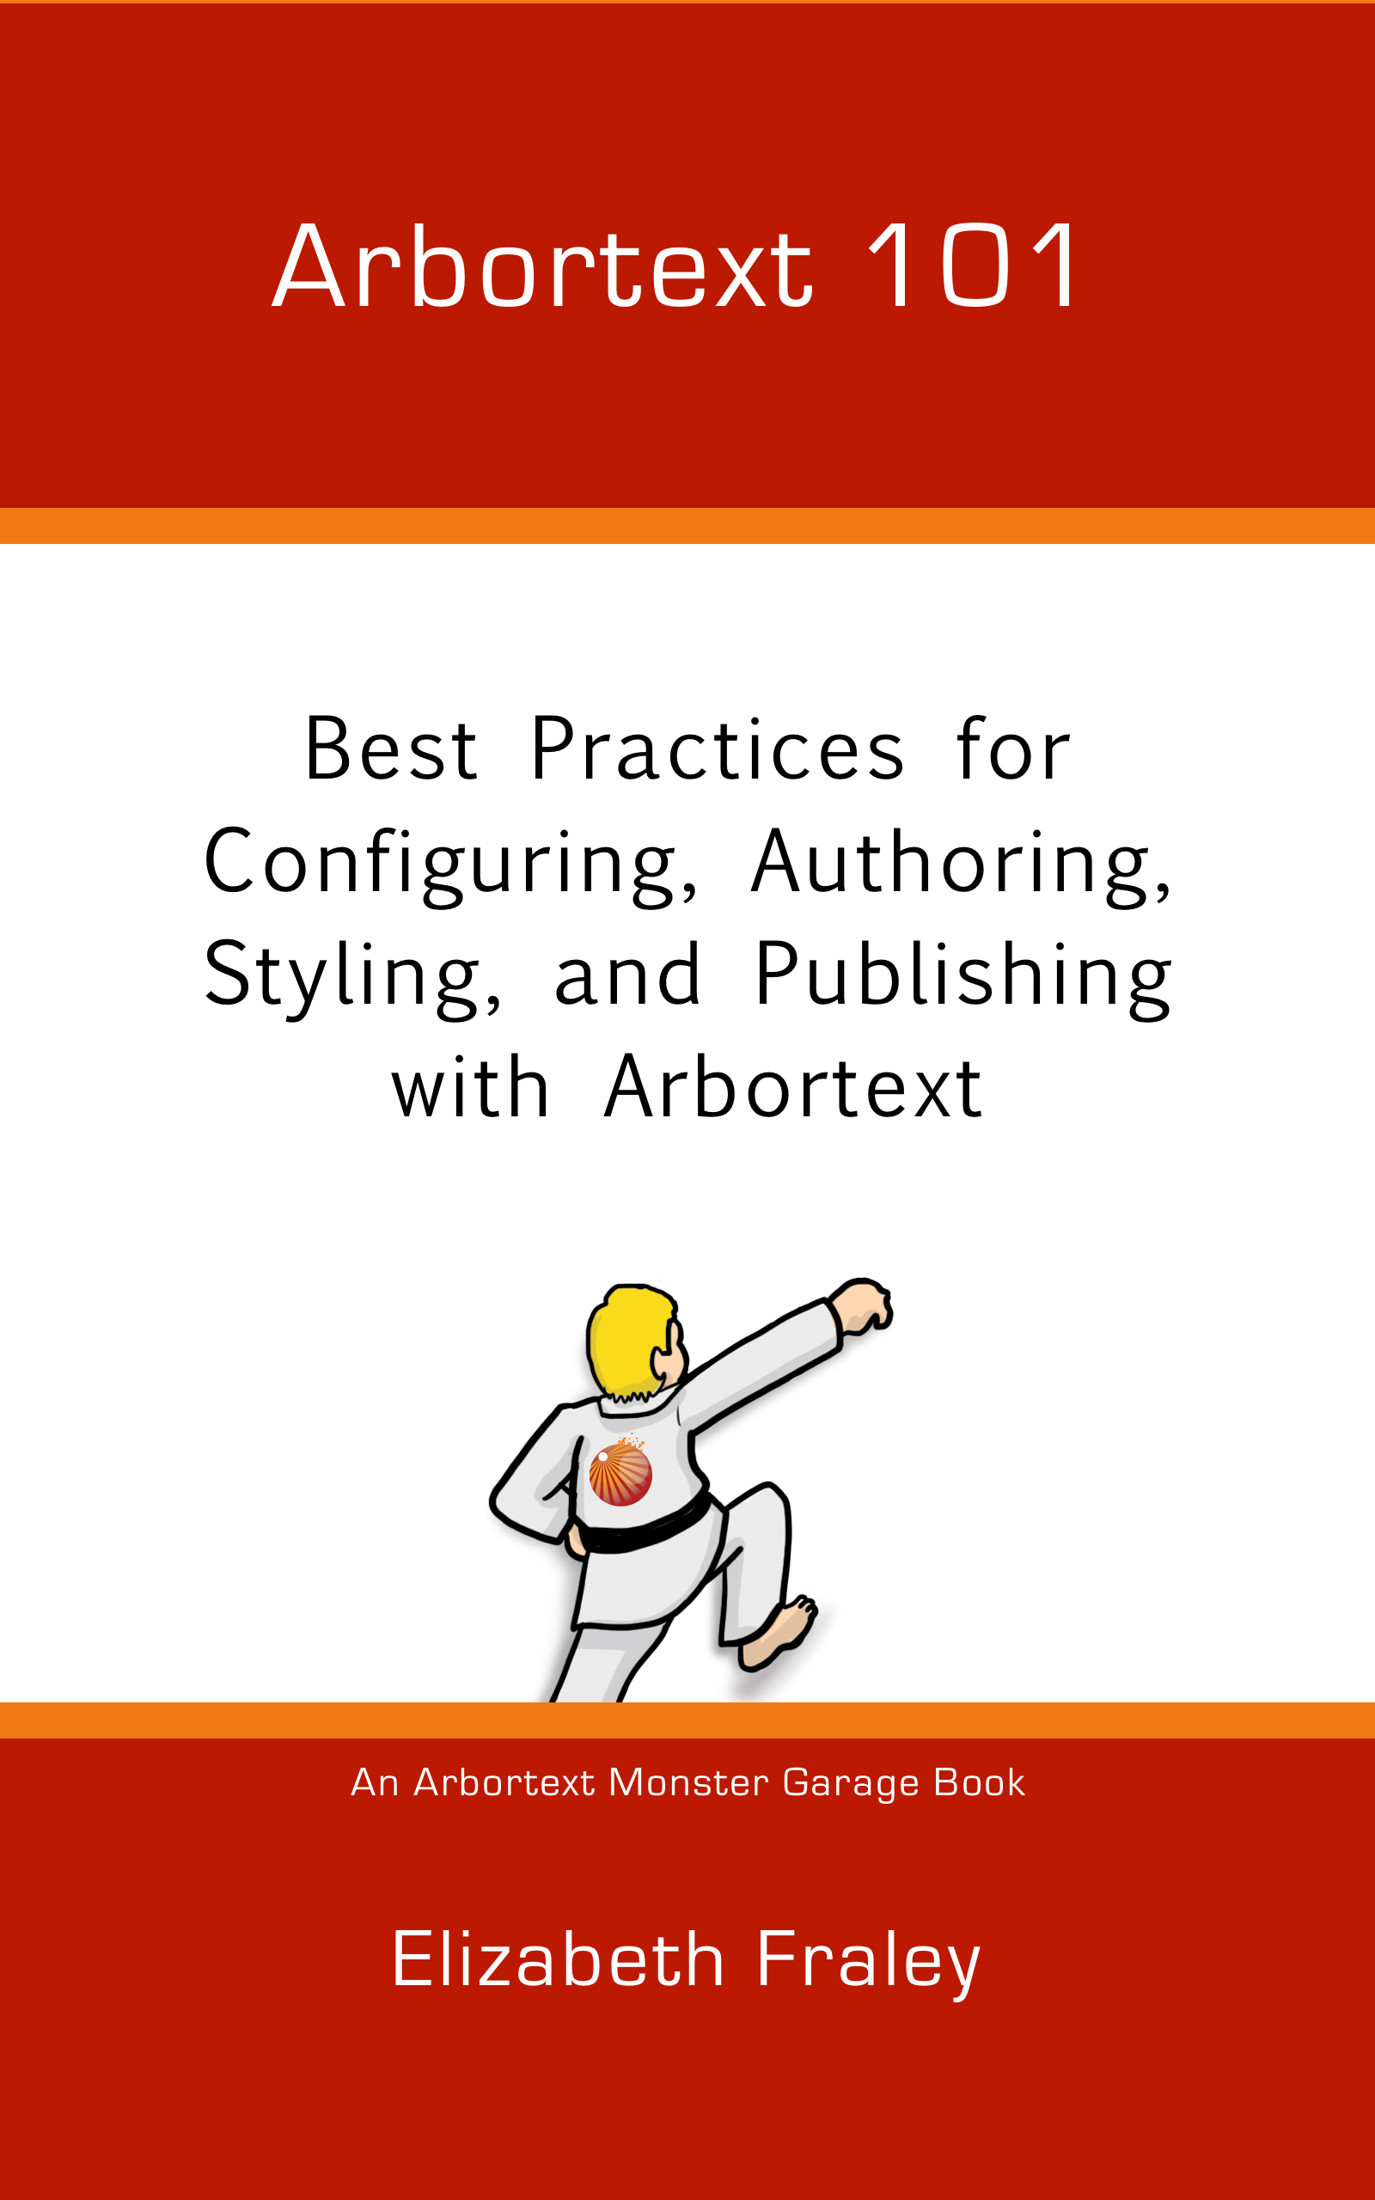 Arbortext 101: Best Practices for Configuring, Authoring, Styling, and Publishing with Arbortext (Arbortext Monster Garage, #1)